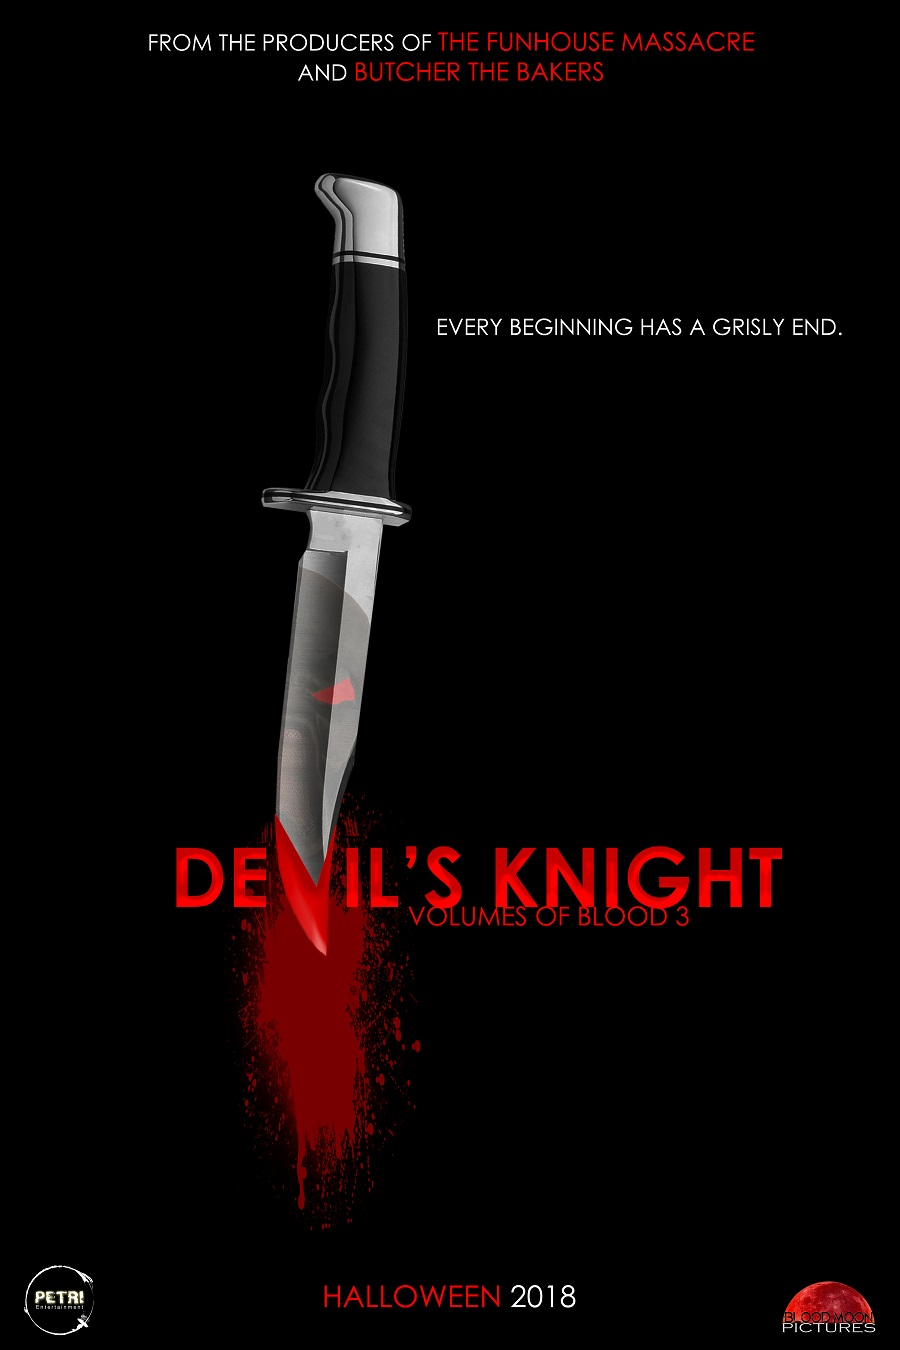 Volumes of Blood 3 Devil's Knight Poster